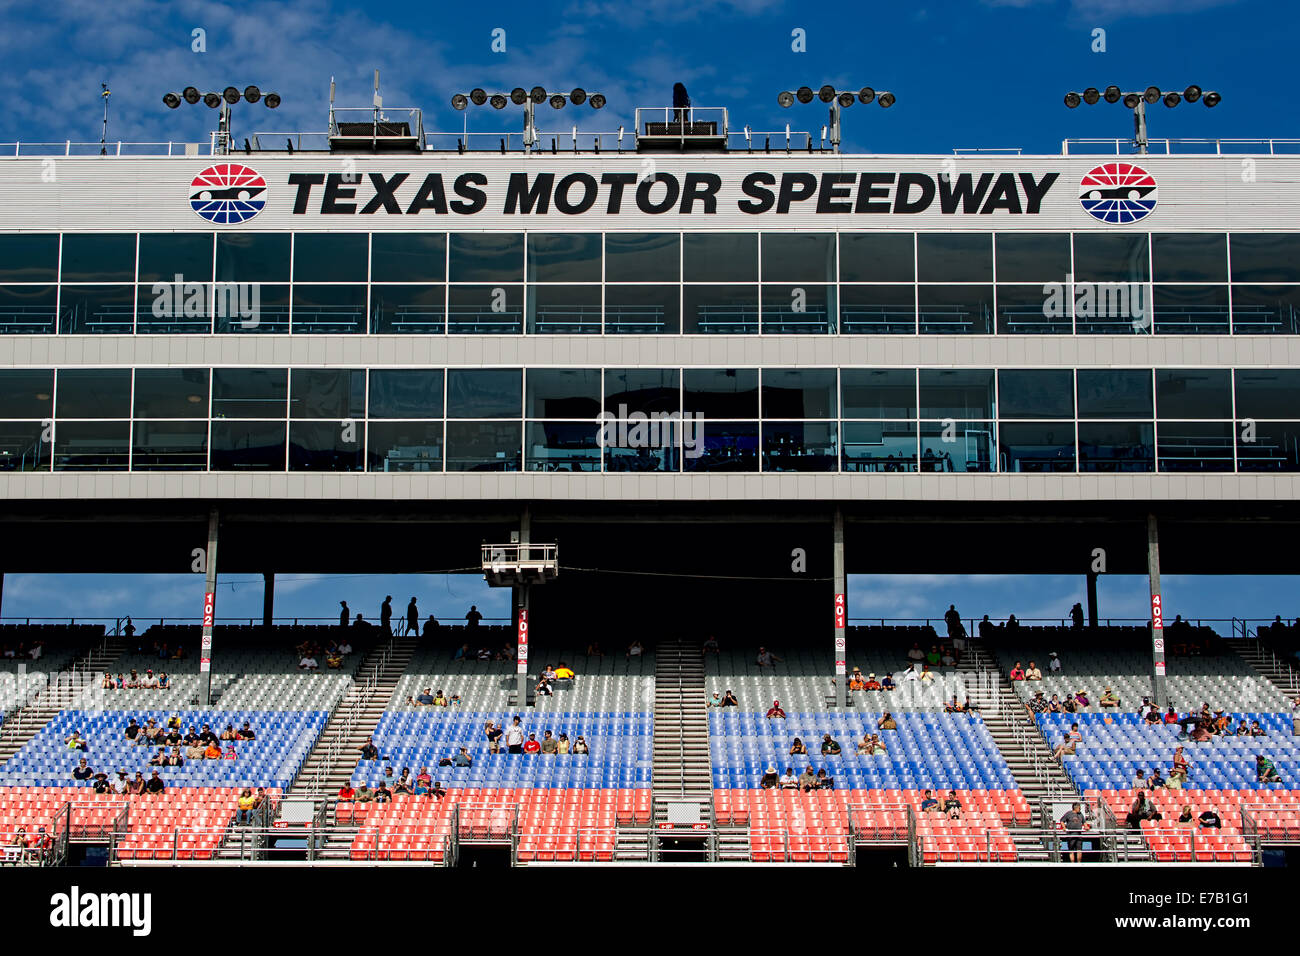 Texas motor spedway for Texas motor speedway schedule this weekend